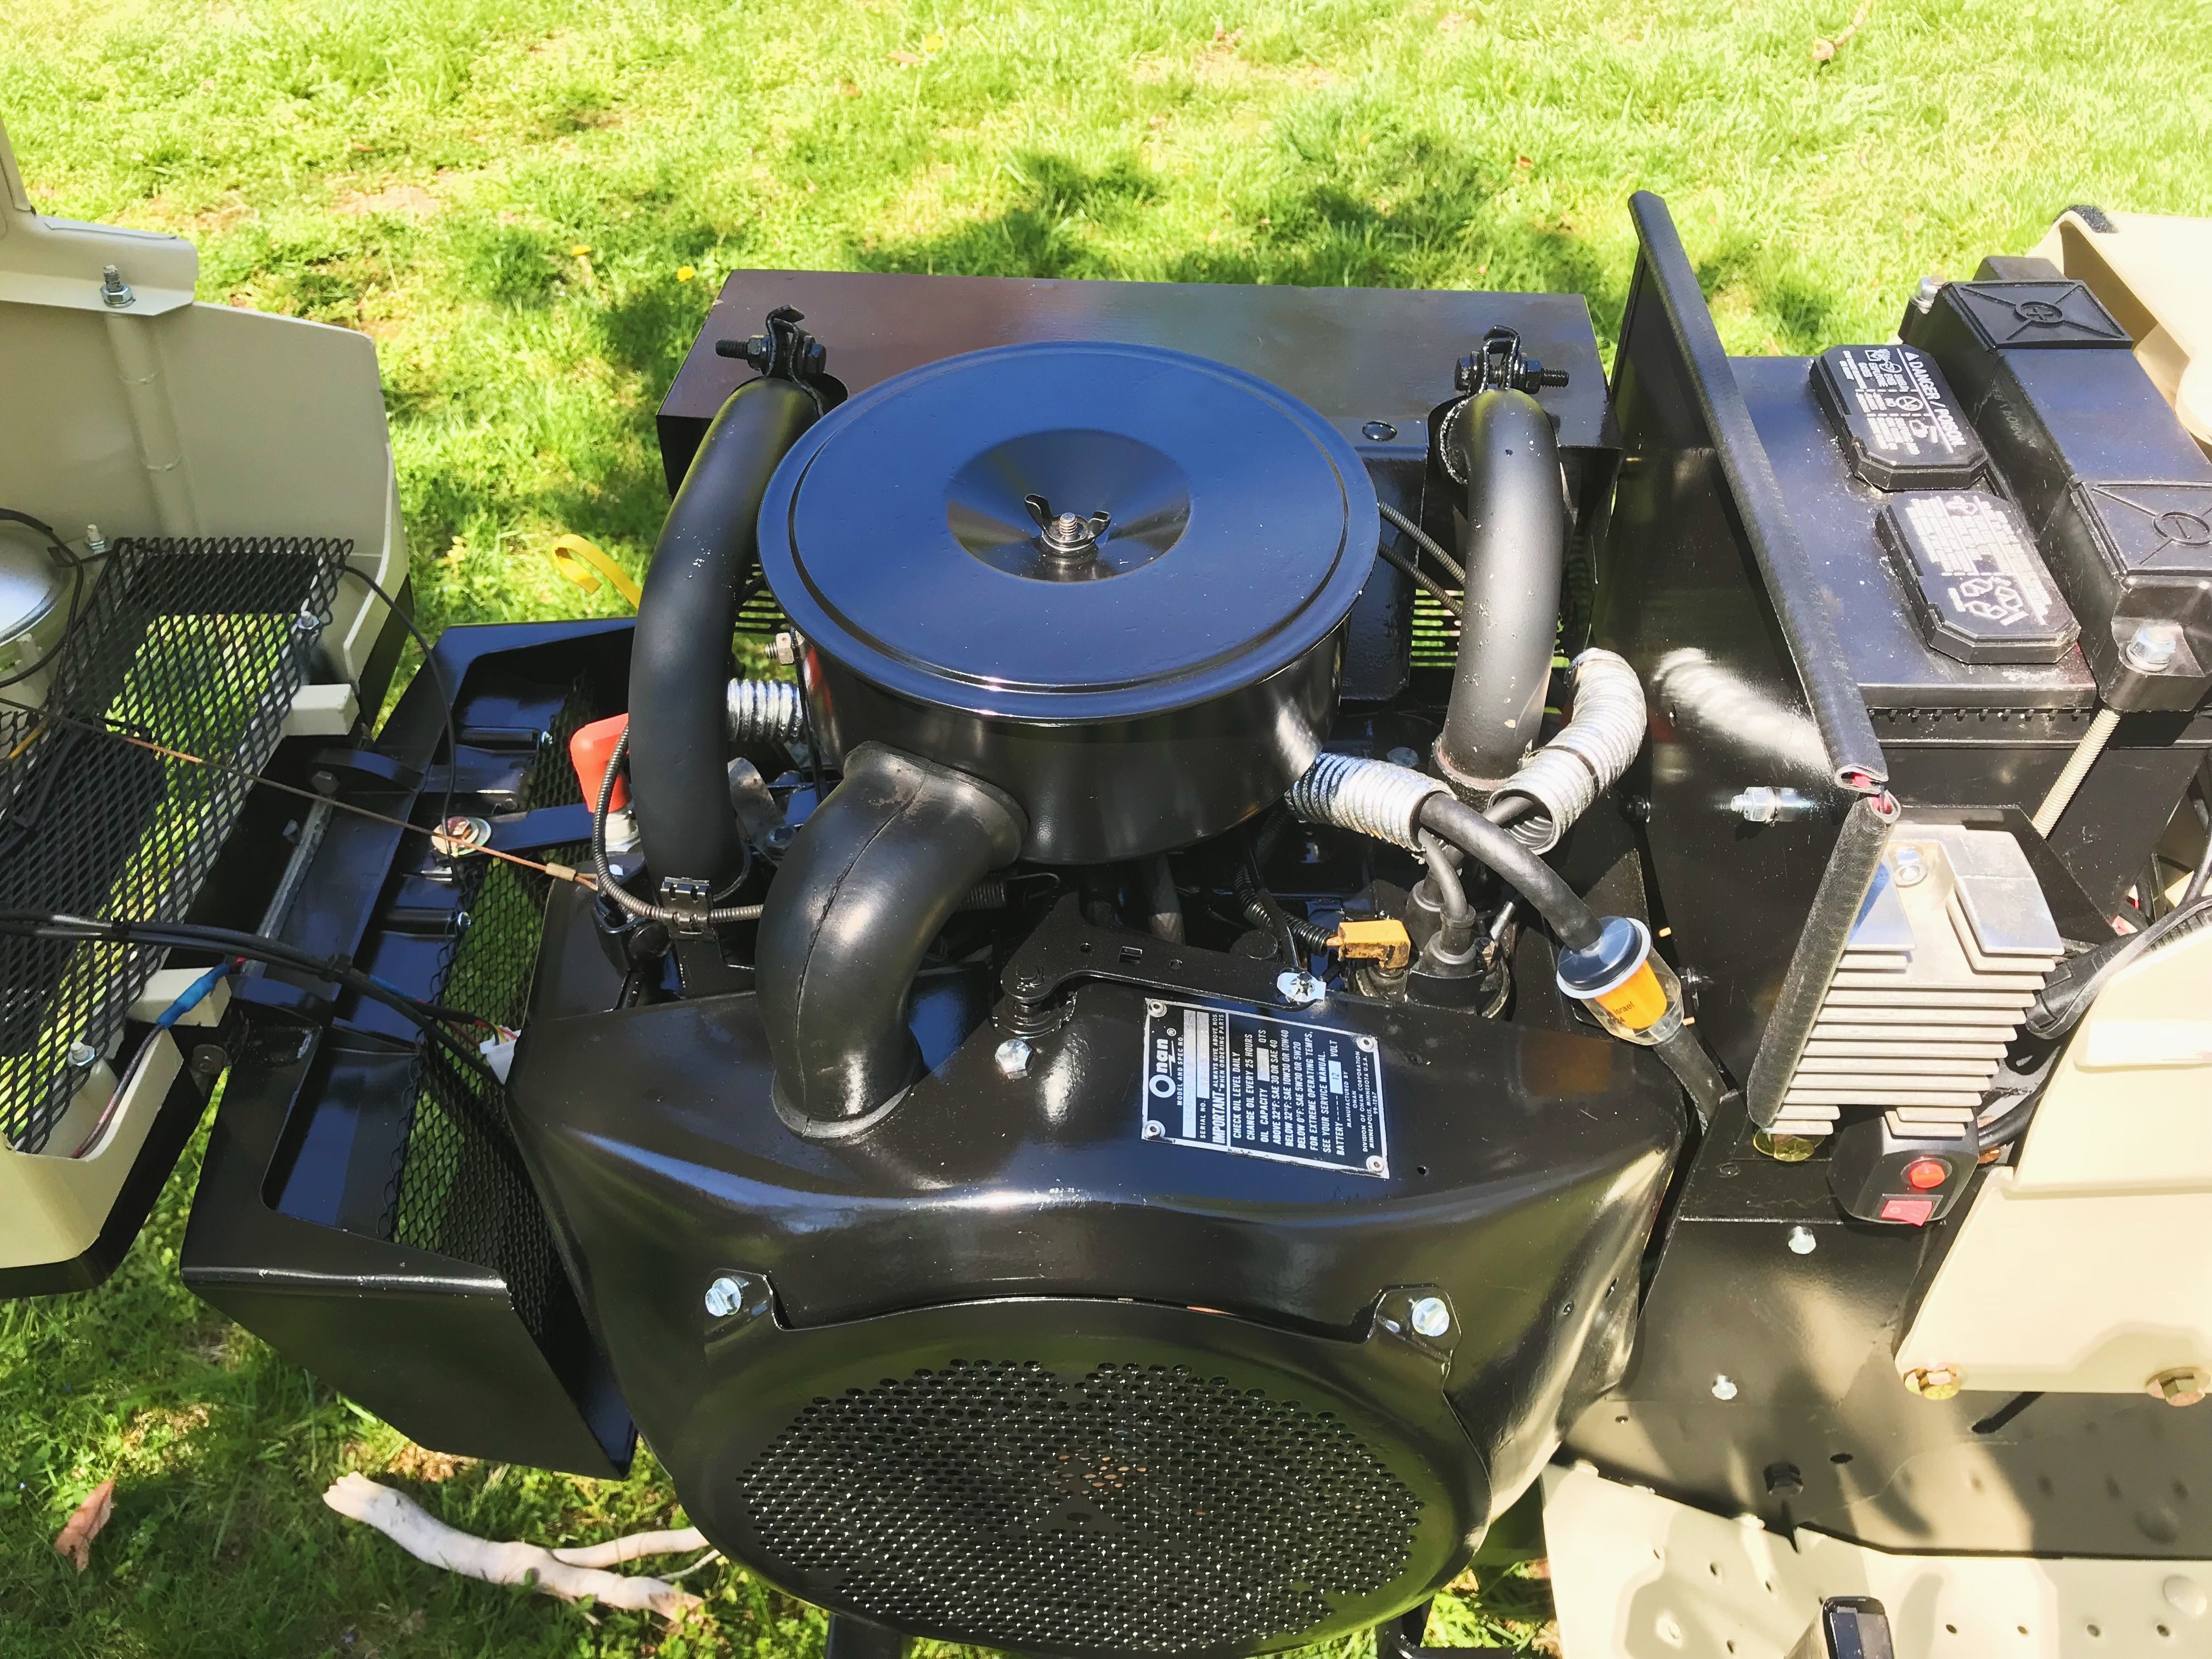 I Restored This Onan B Engine March 2018 Garden Tractor Vw Rabbit Tractors